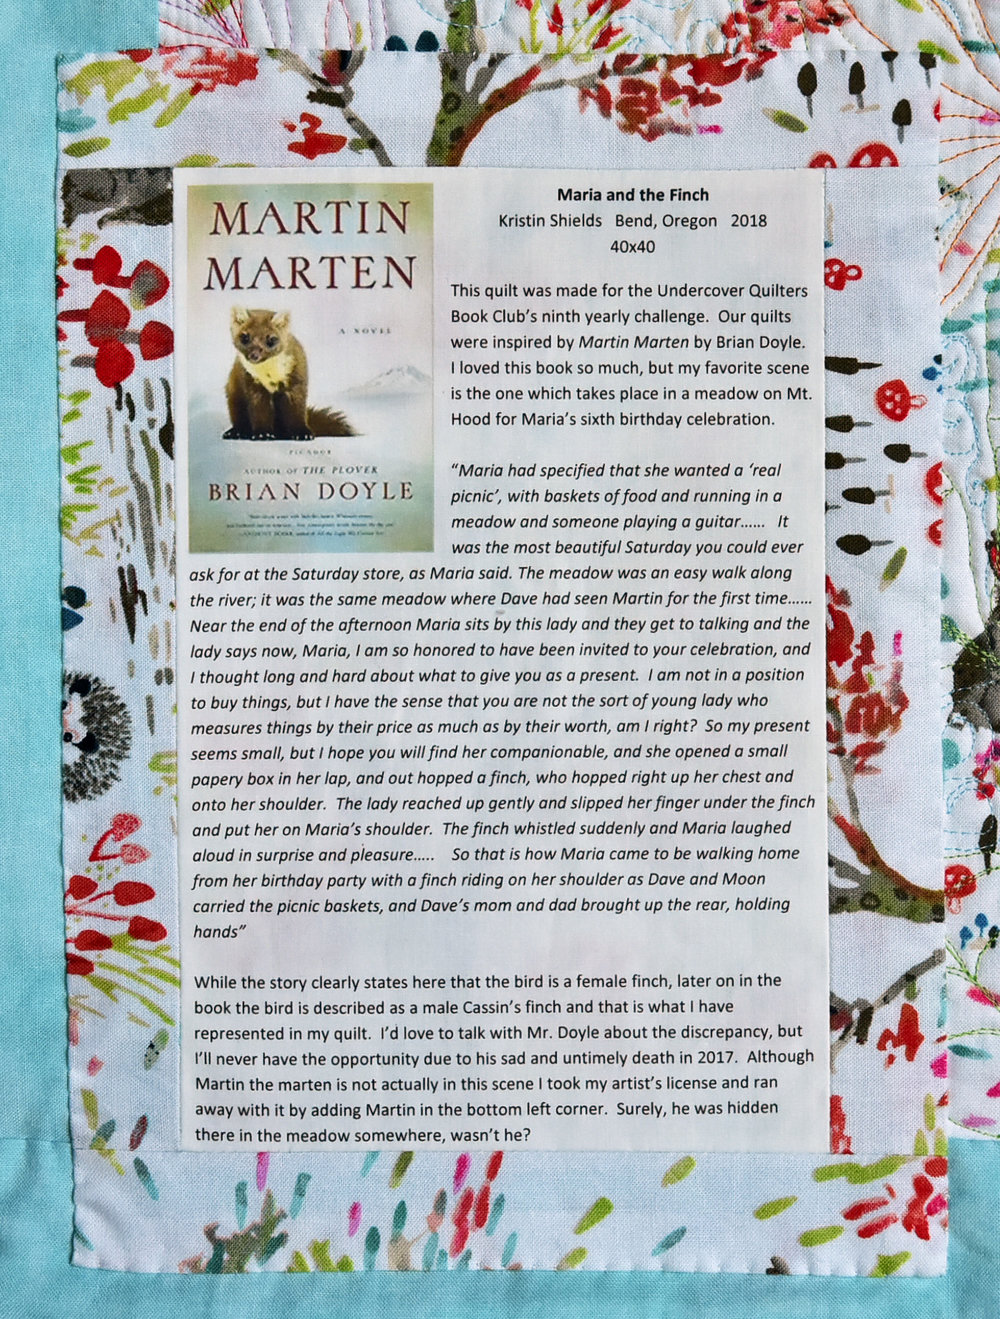 Maria And The Finch Kristin Shields Circuit Bending Fool Pitch Mod Tutorial Print Onto Printable Fabric I Hope Youll Consider Reading Martin Marten Yourself Its A Wonderful Book Quilts Our Group Made Are Really